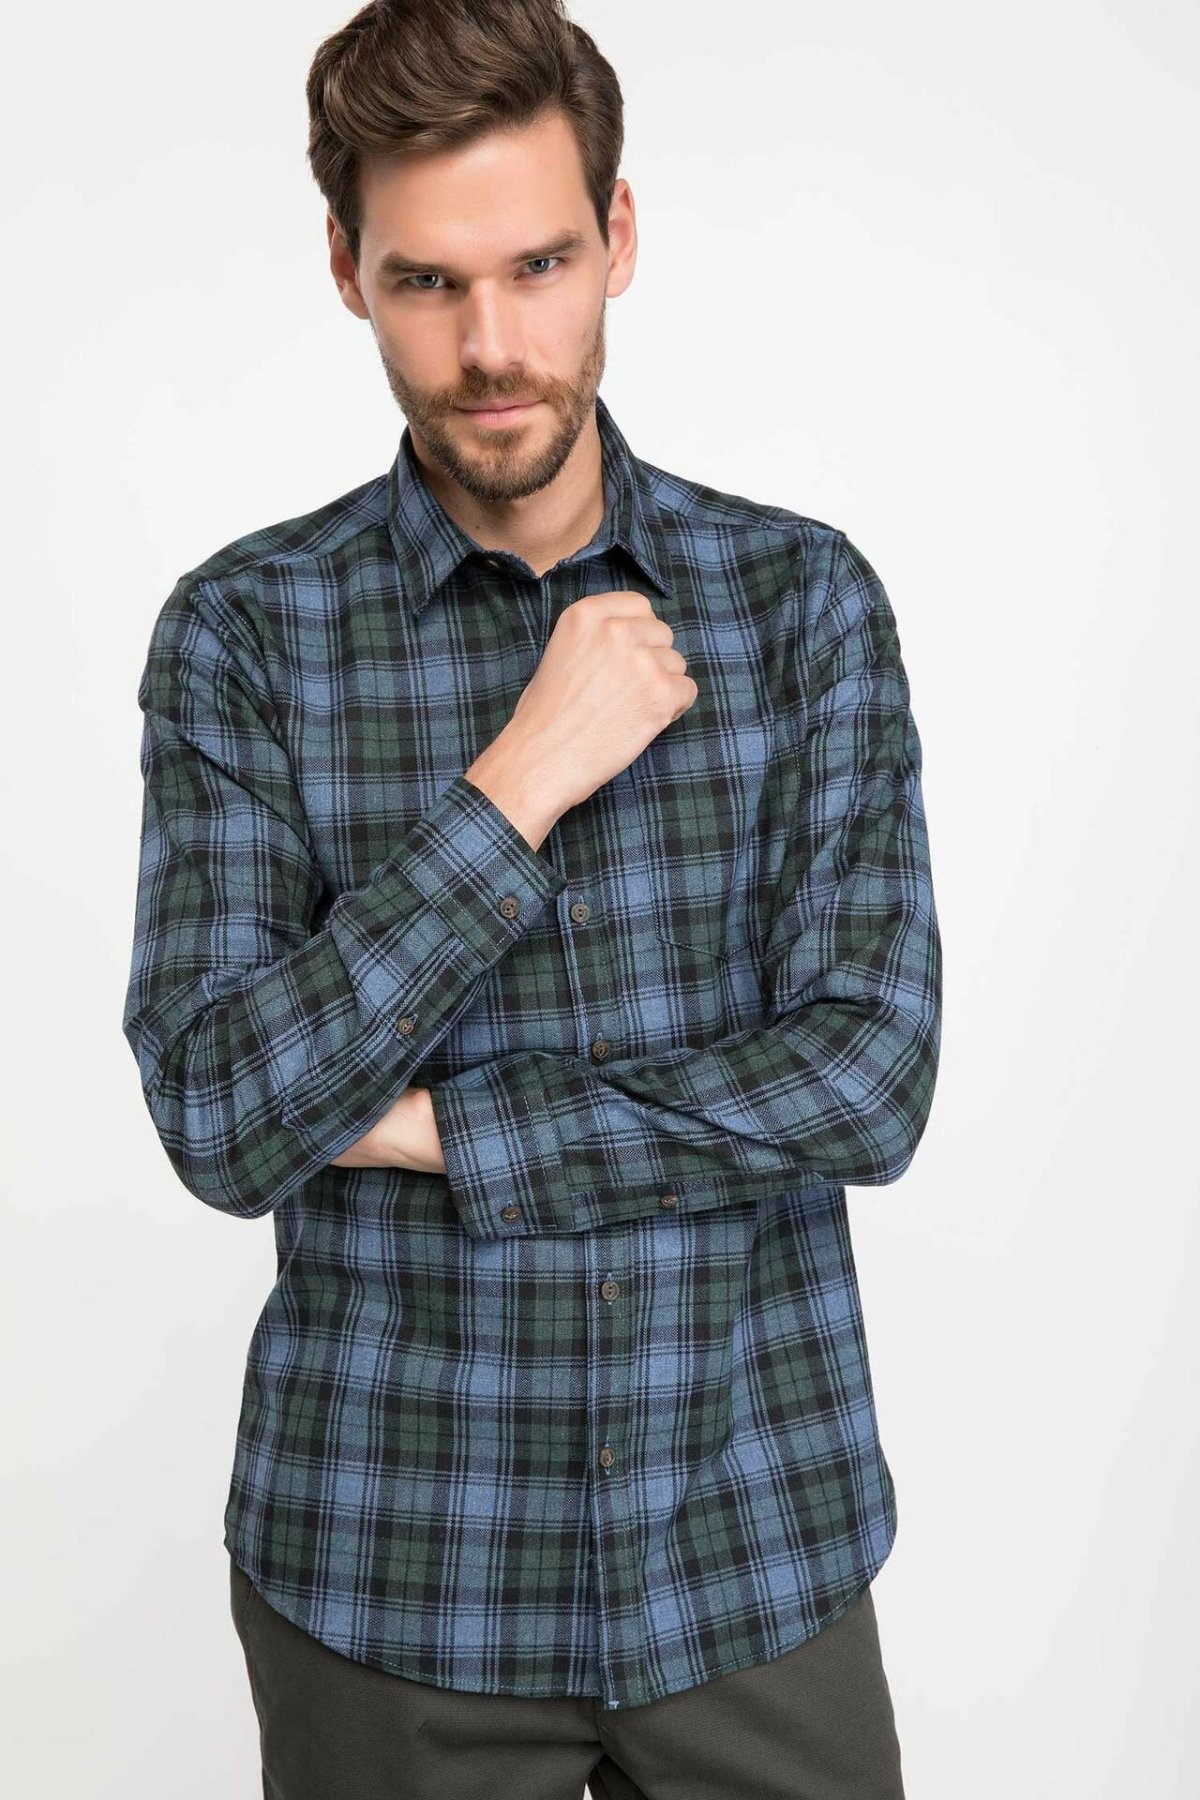 DeFacto Man Blue Green Plaids Long Sleeve Shirt Men Casual Cotton Shirts Men Grids Top Cloth Shirt-J1421AZ18WN